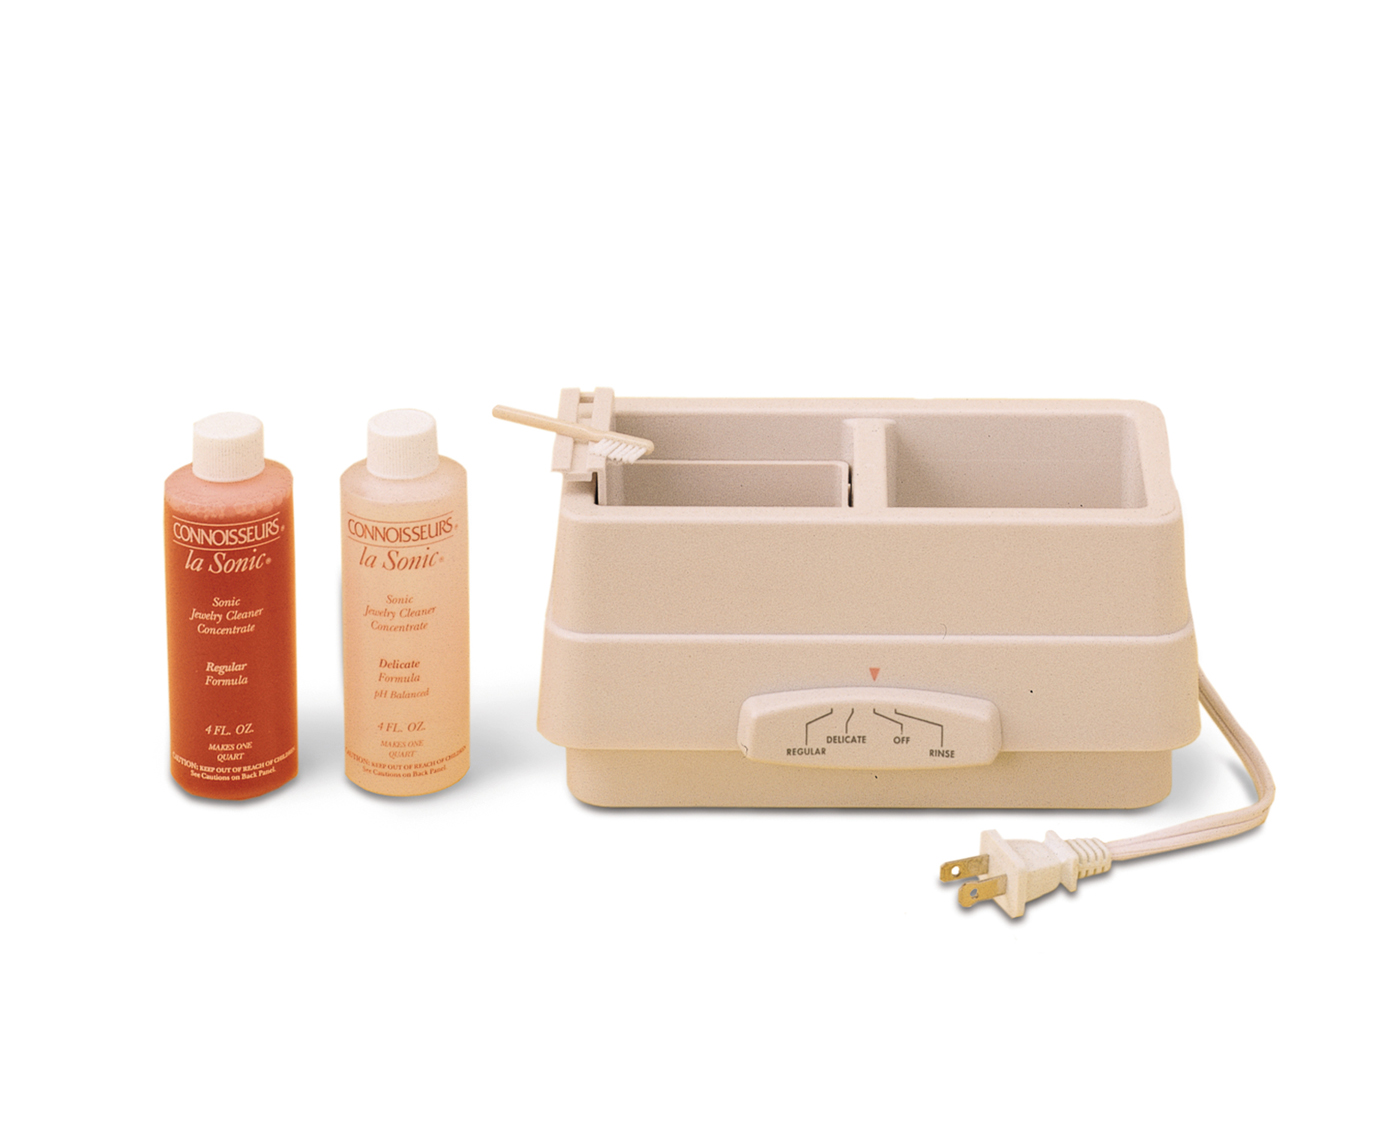 CL1854 LA SONIC III Professional Jewelry Cleaner